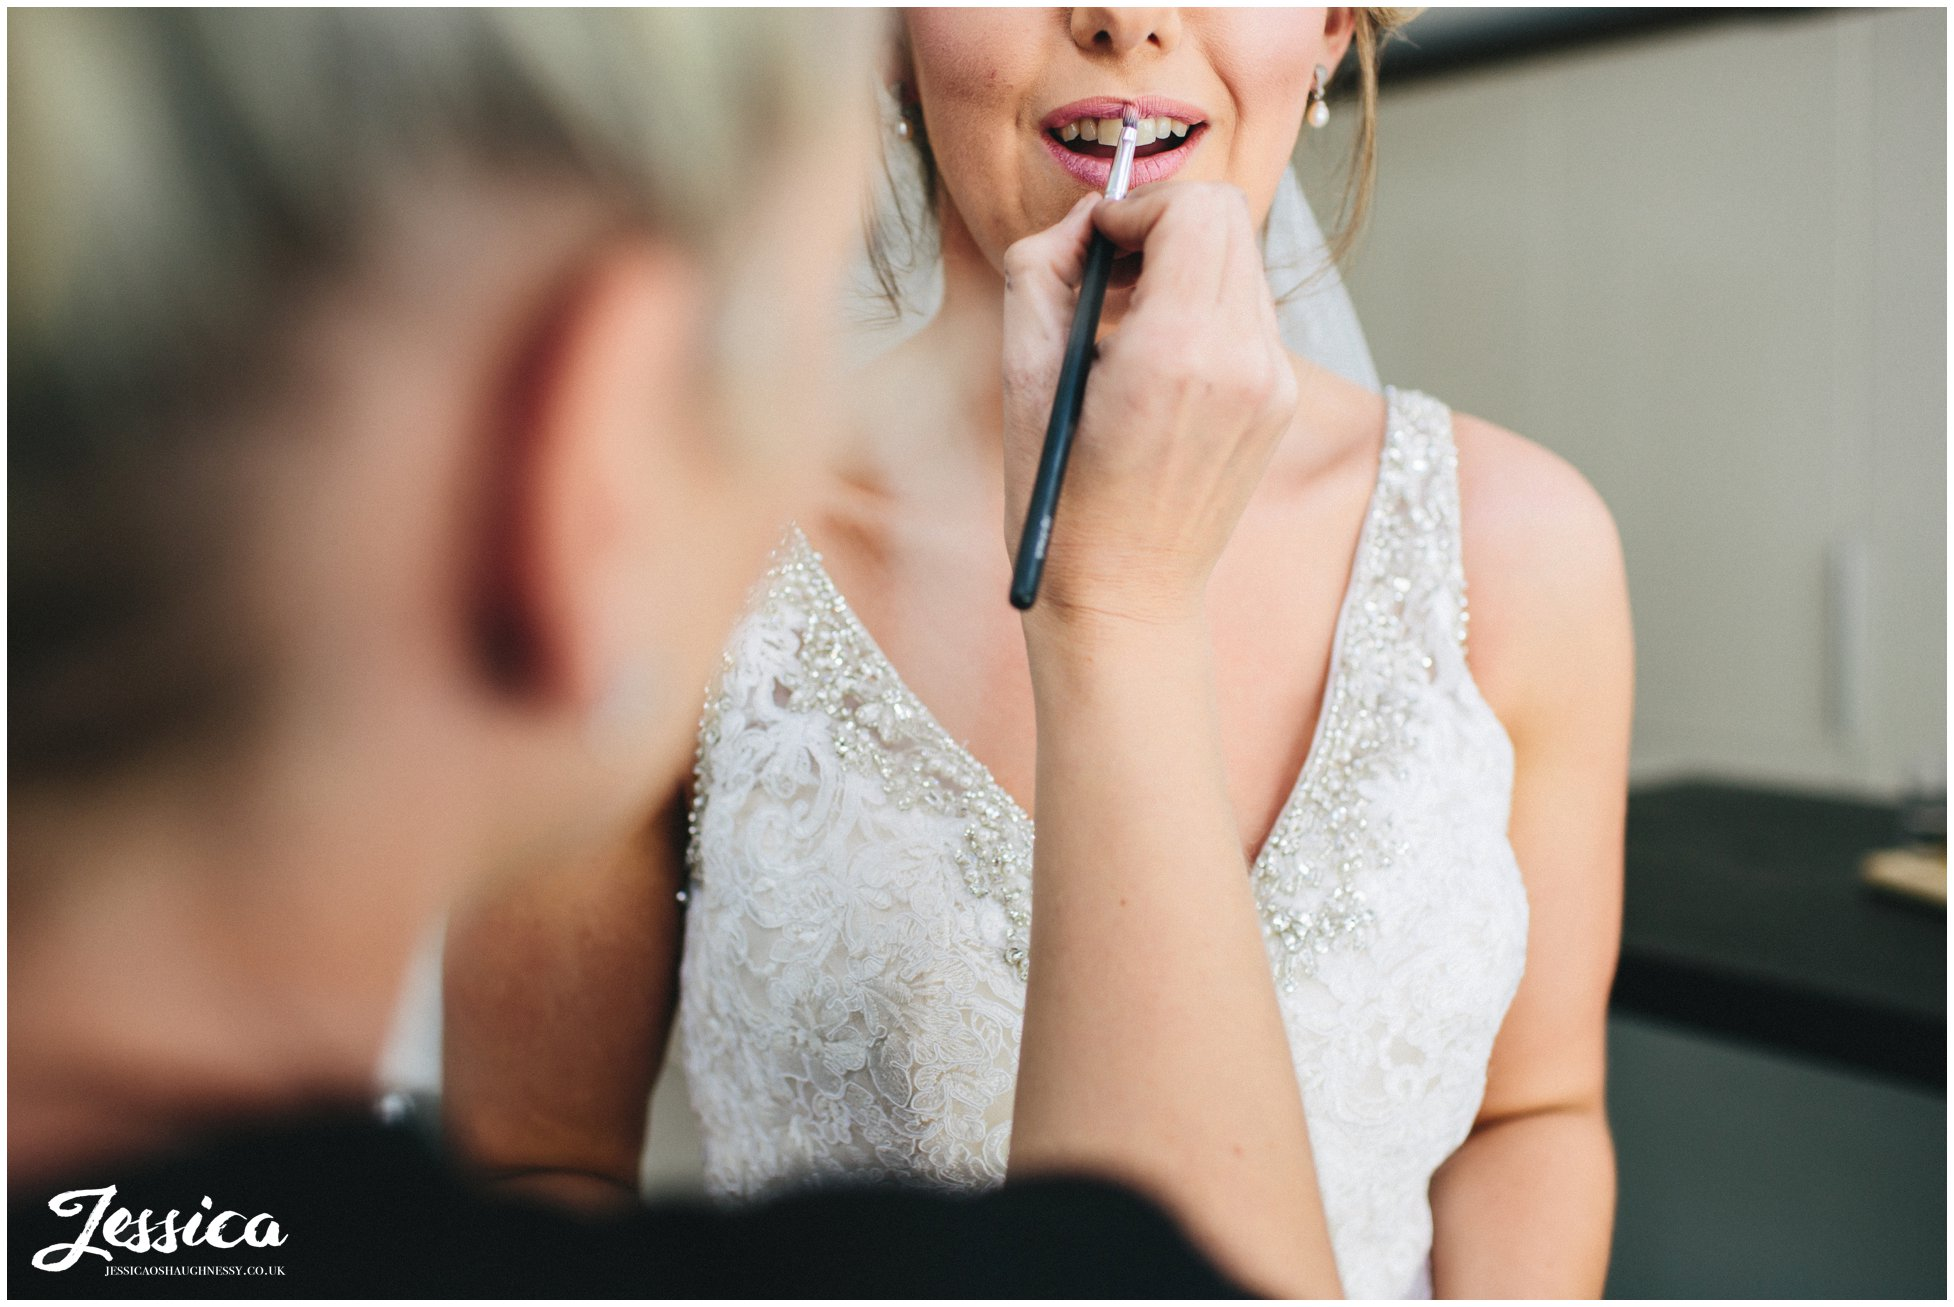 the brides lipstick touch ups before leaving for her ceremony at tower hill barns